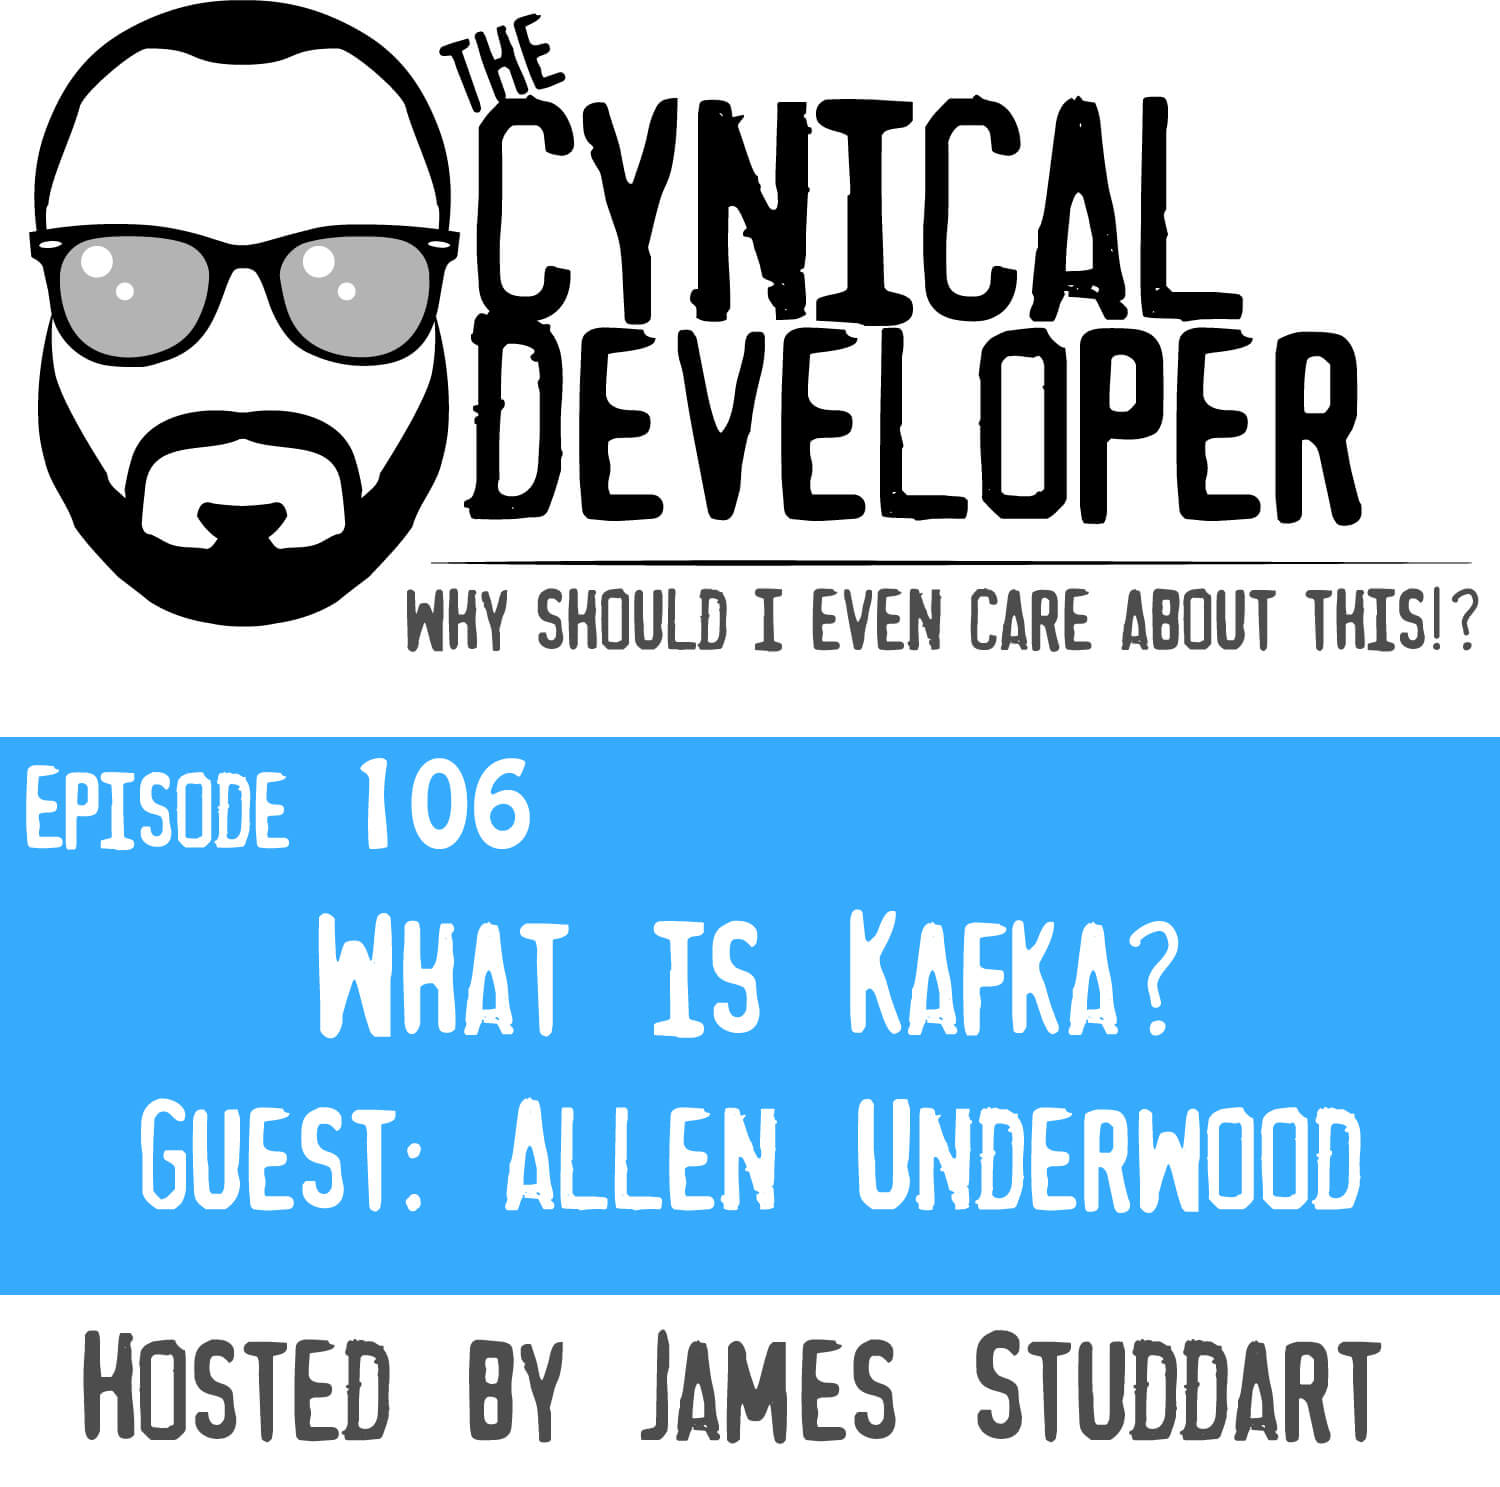 Episode 106 - What is Kafka?